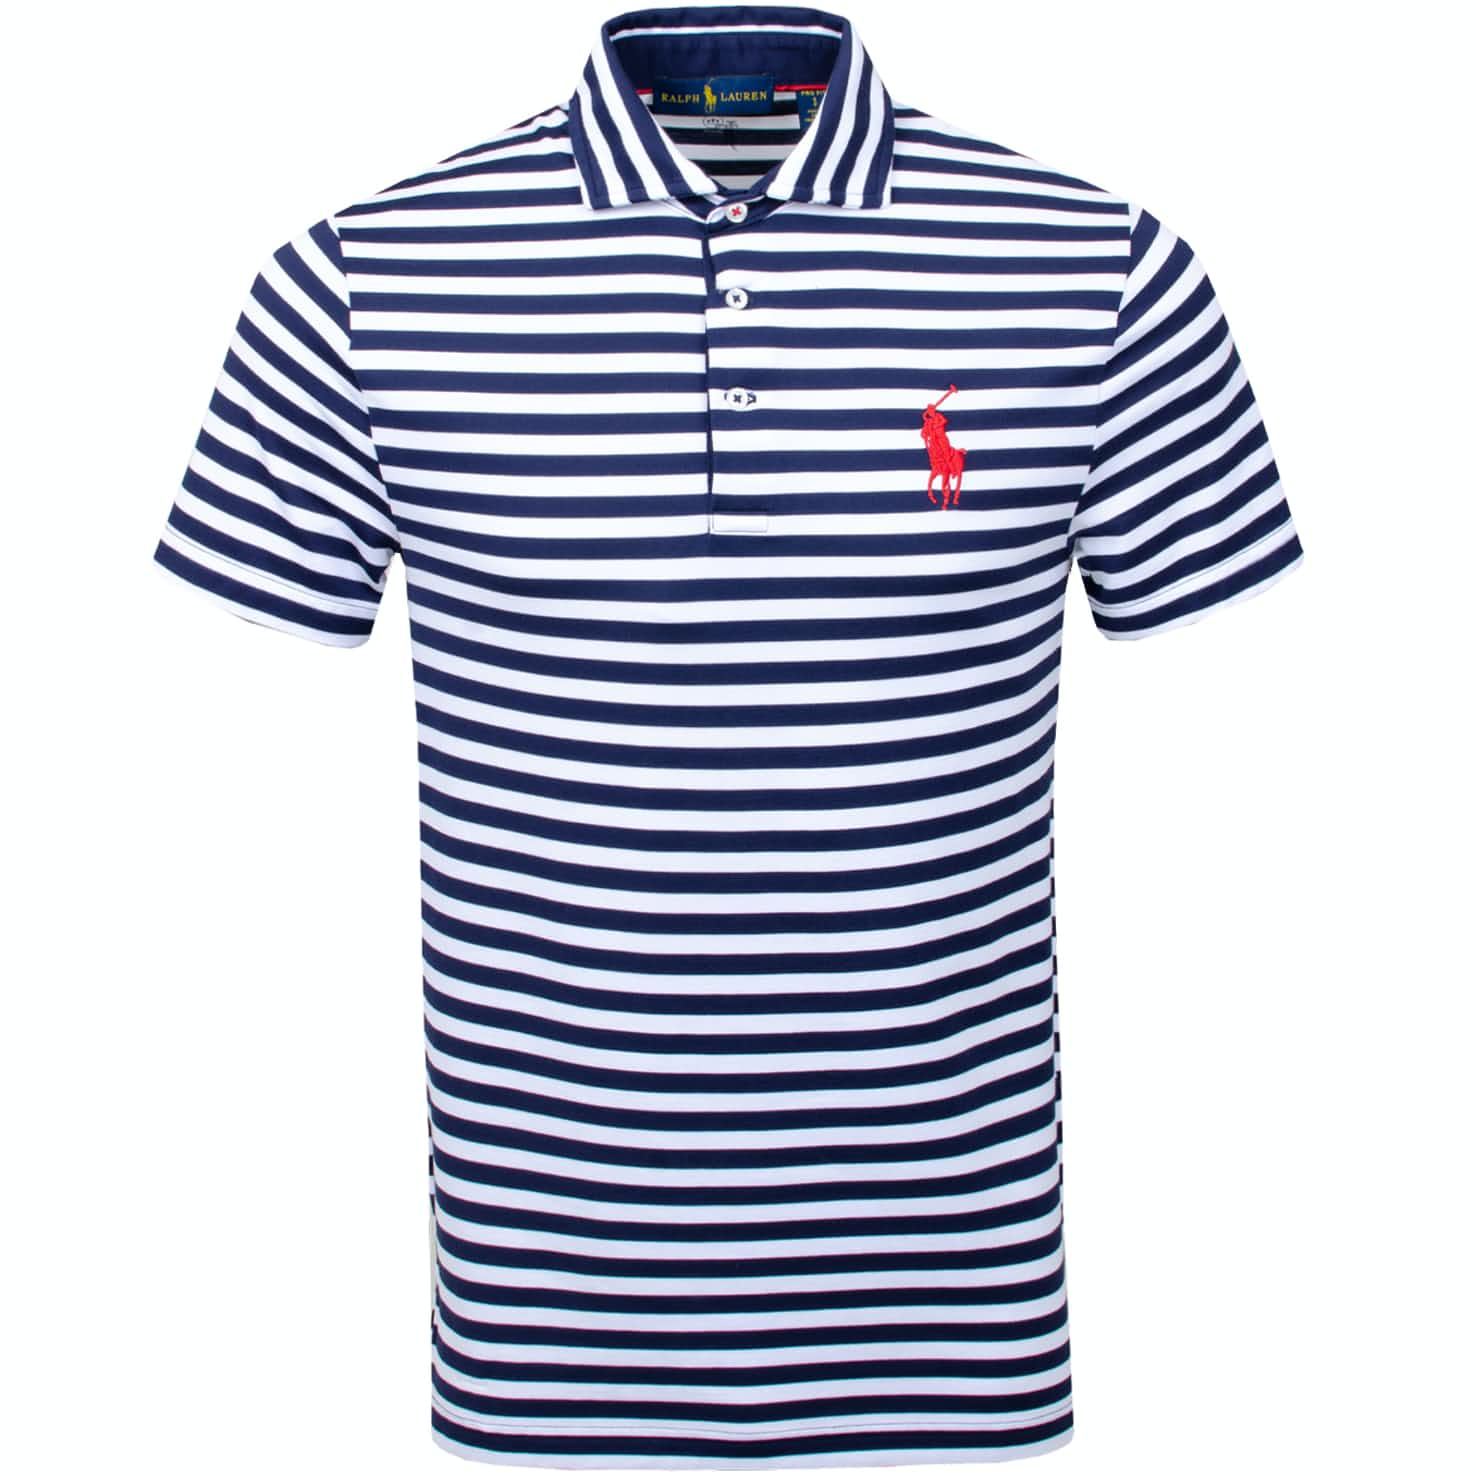 x Justin Thomas YD Pique French Navy/White - AW19